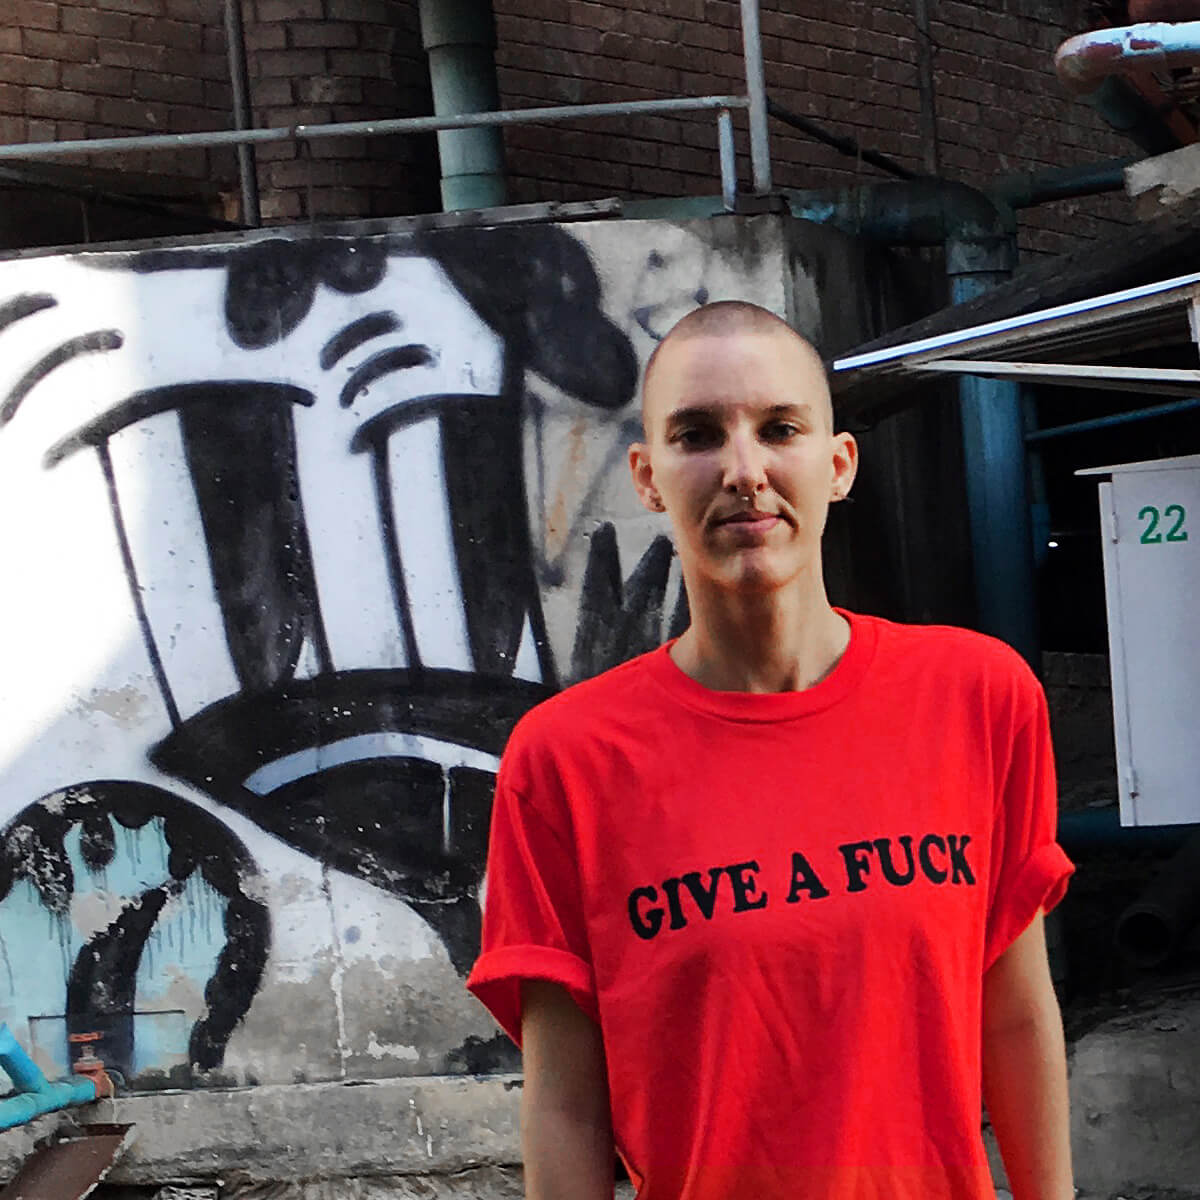 give a fuck t-shirt